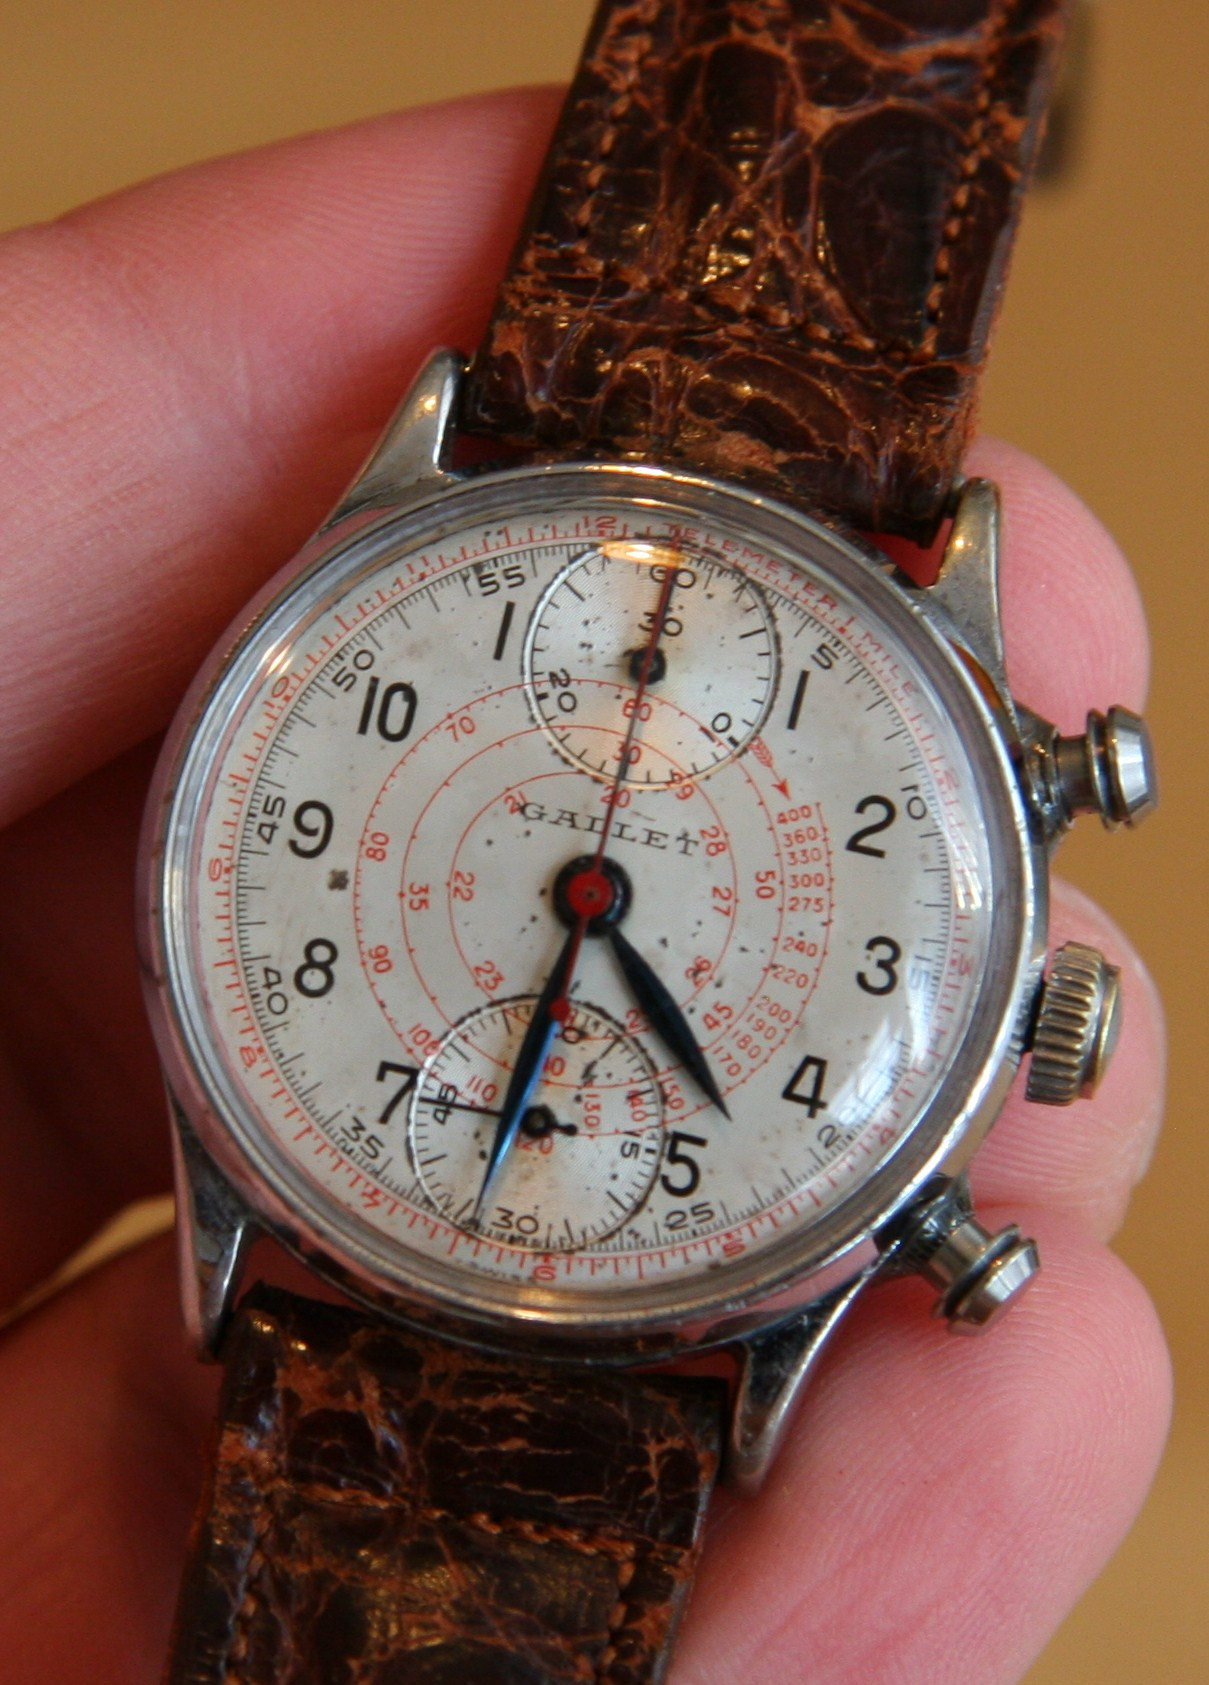 Casio Vintage Living With The Past: Week With 1940's Vintage Gallet